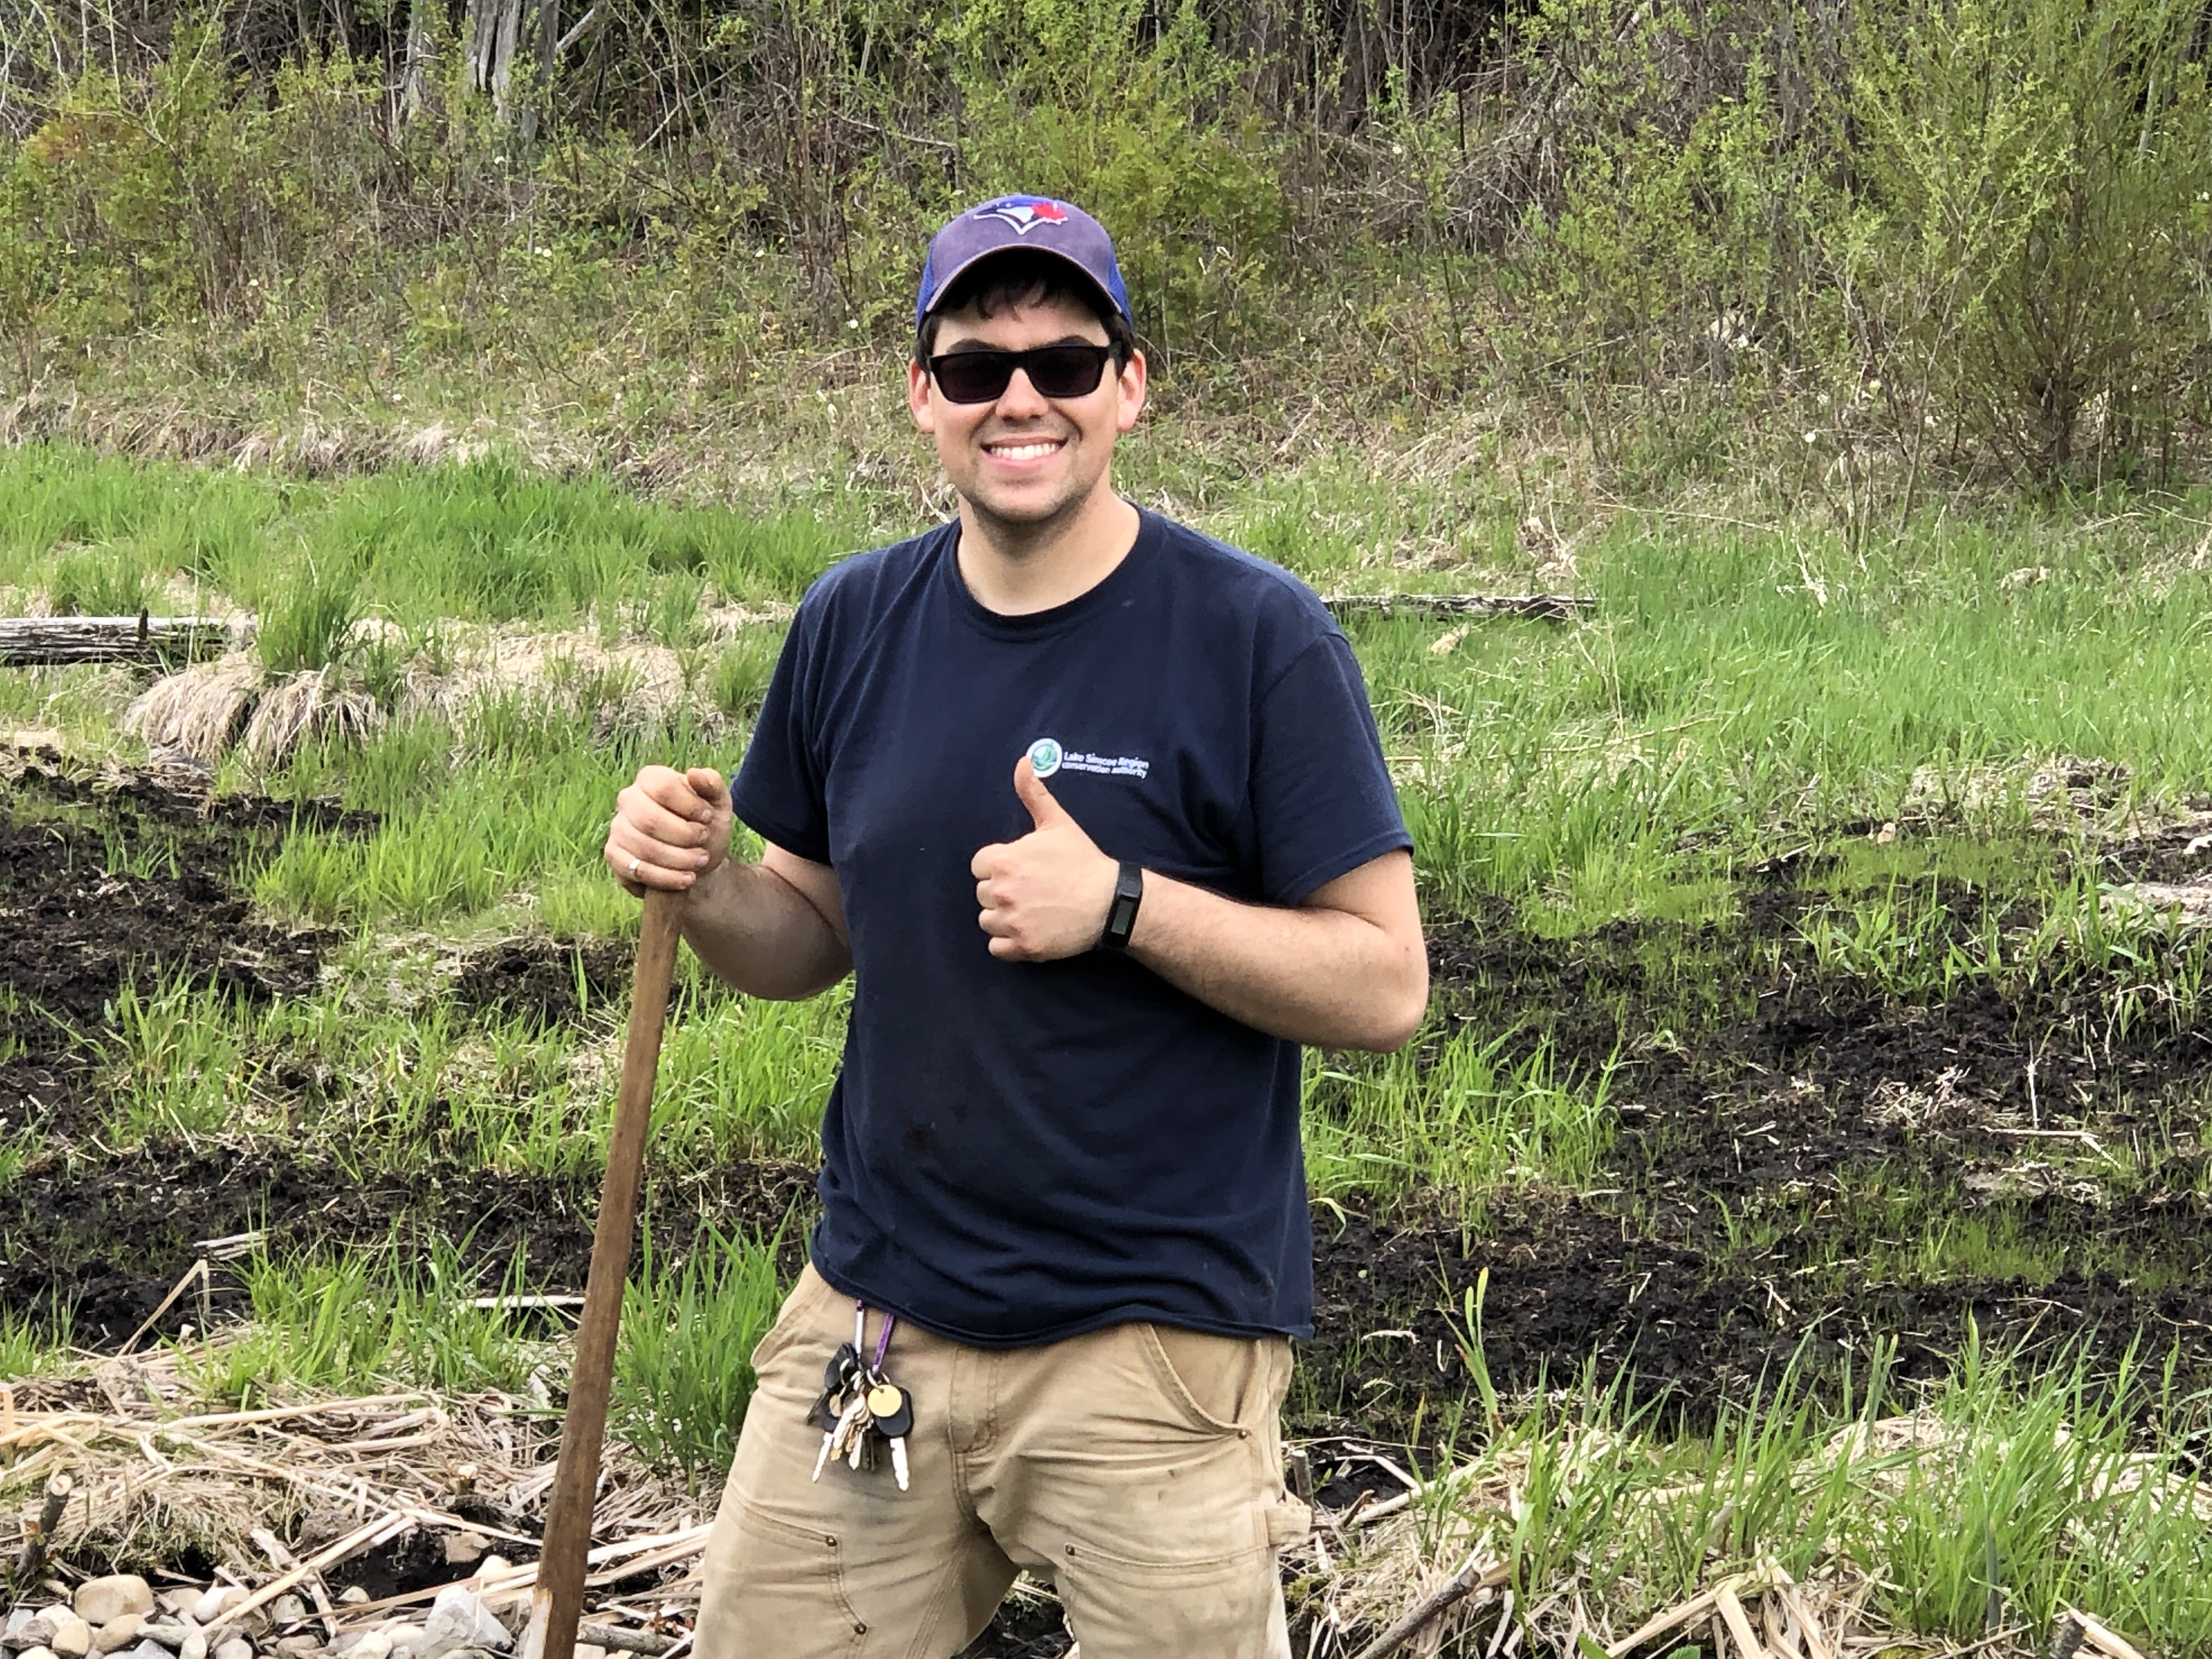 Cory Byron looks at the camera. He's smiling, holding a shovel and with one hand giving thumbs up.